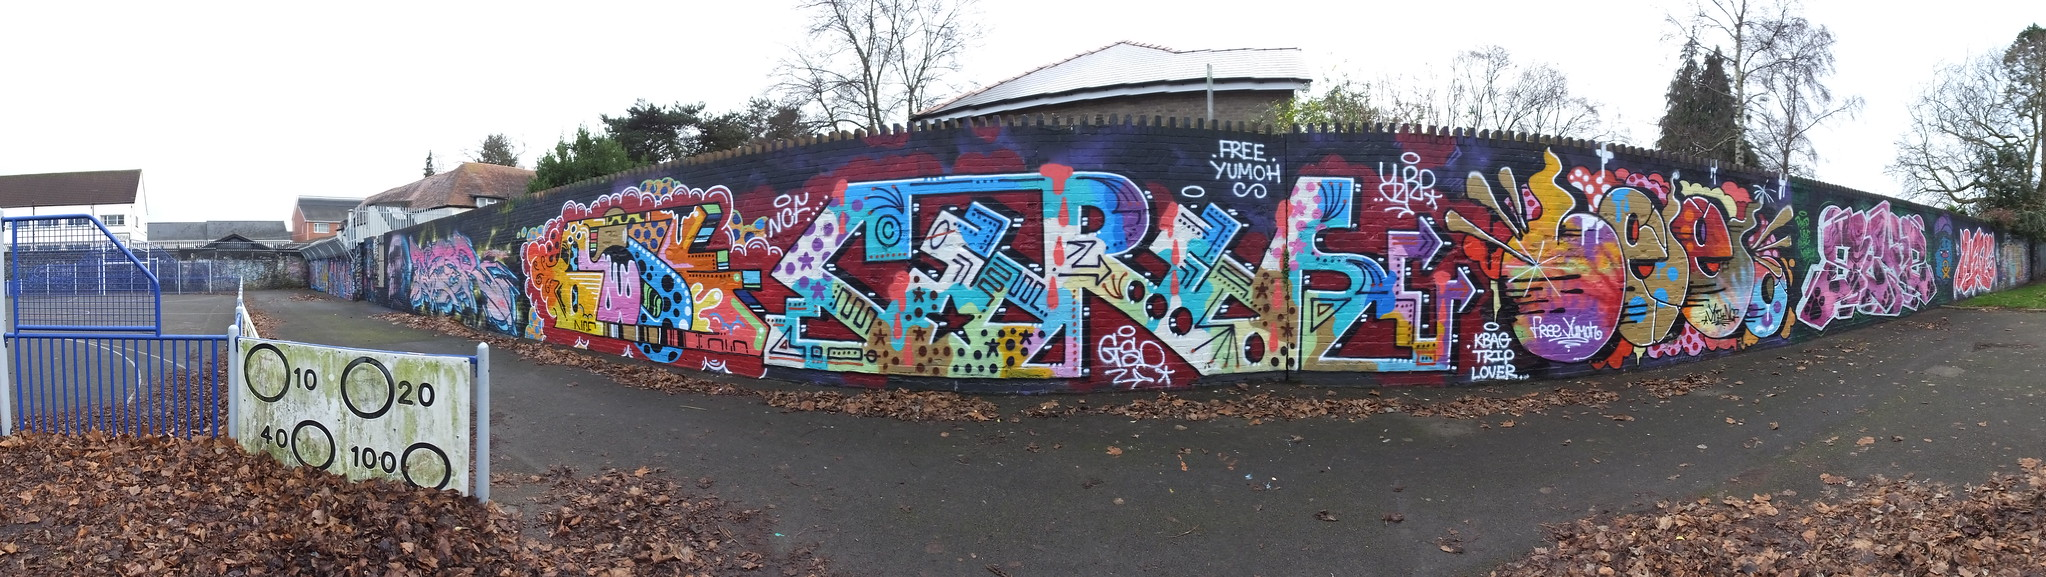 Rmer and Tizer Street art, Cardiff